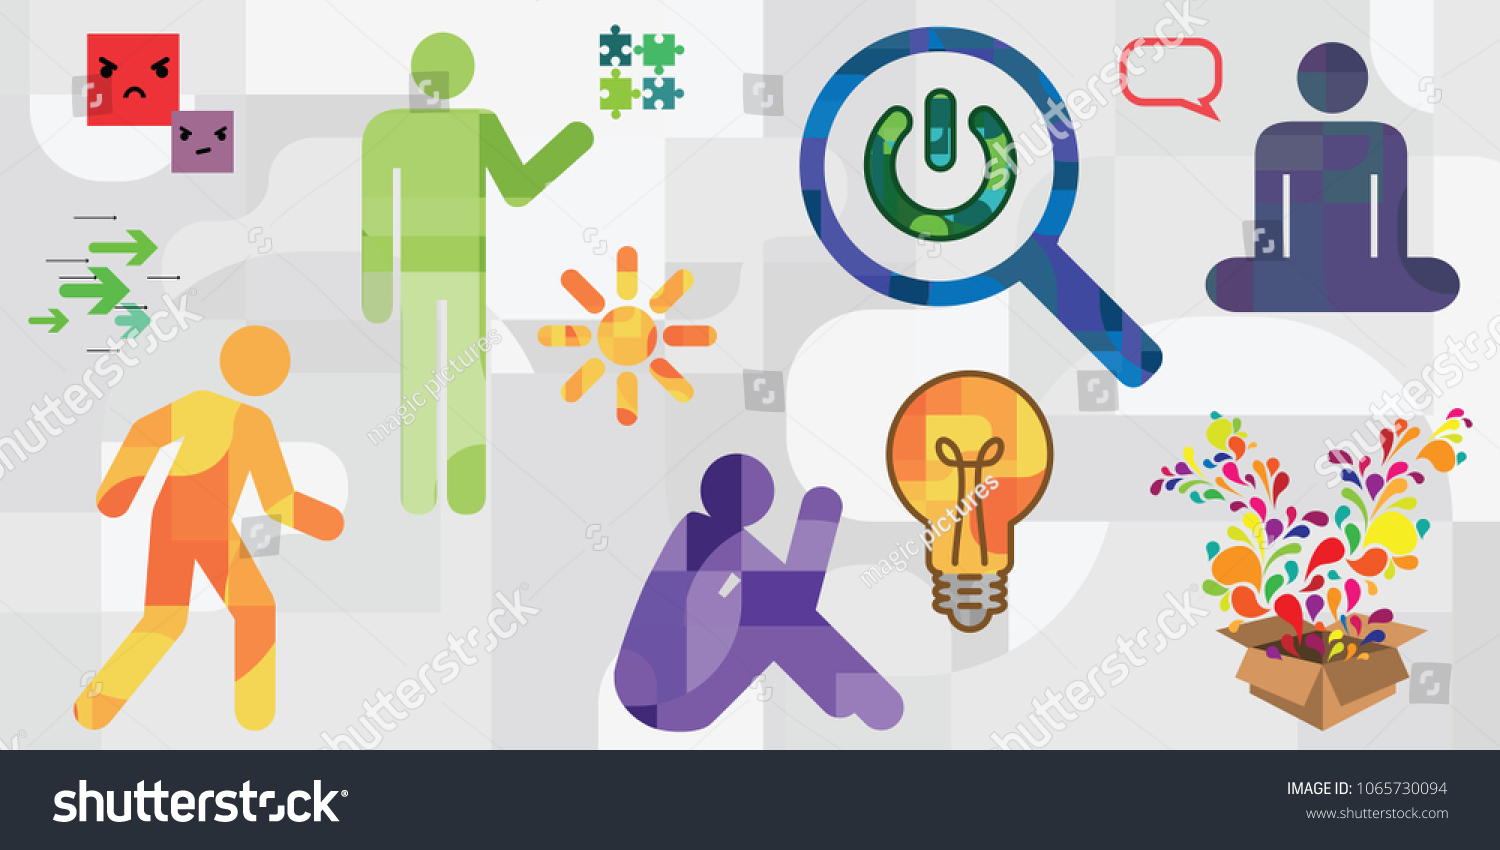 Vector Illustration Human Silhouettes Different Symbols Stock Vector